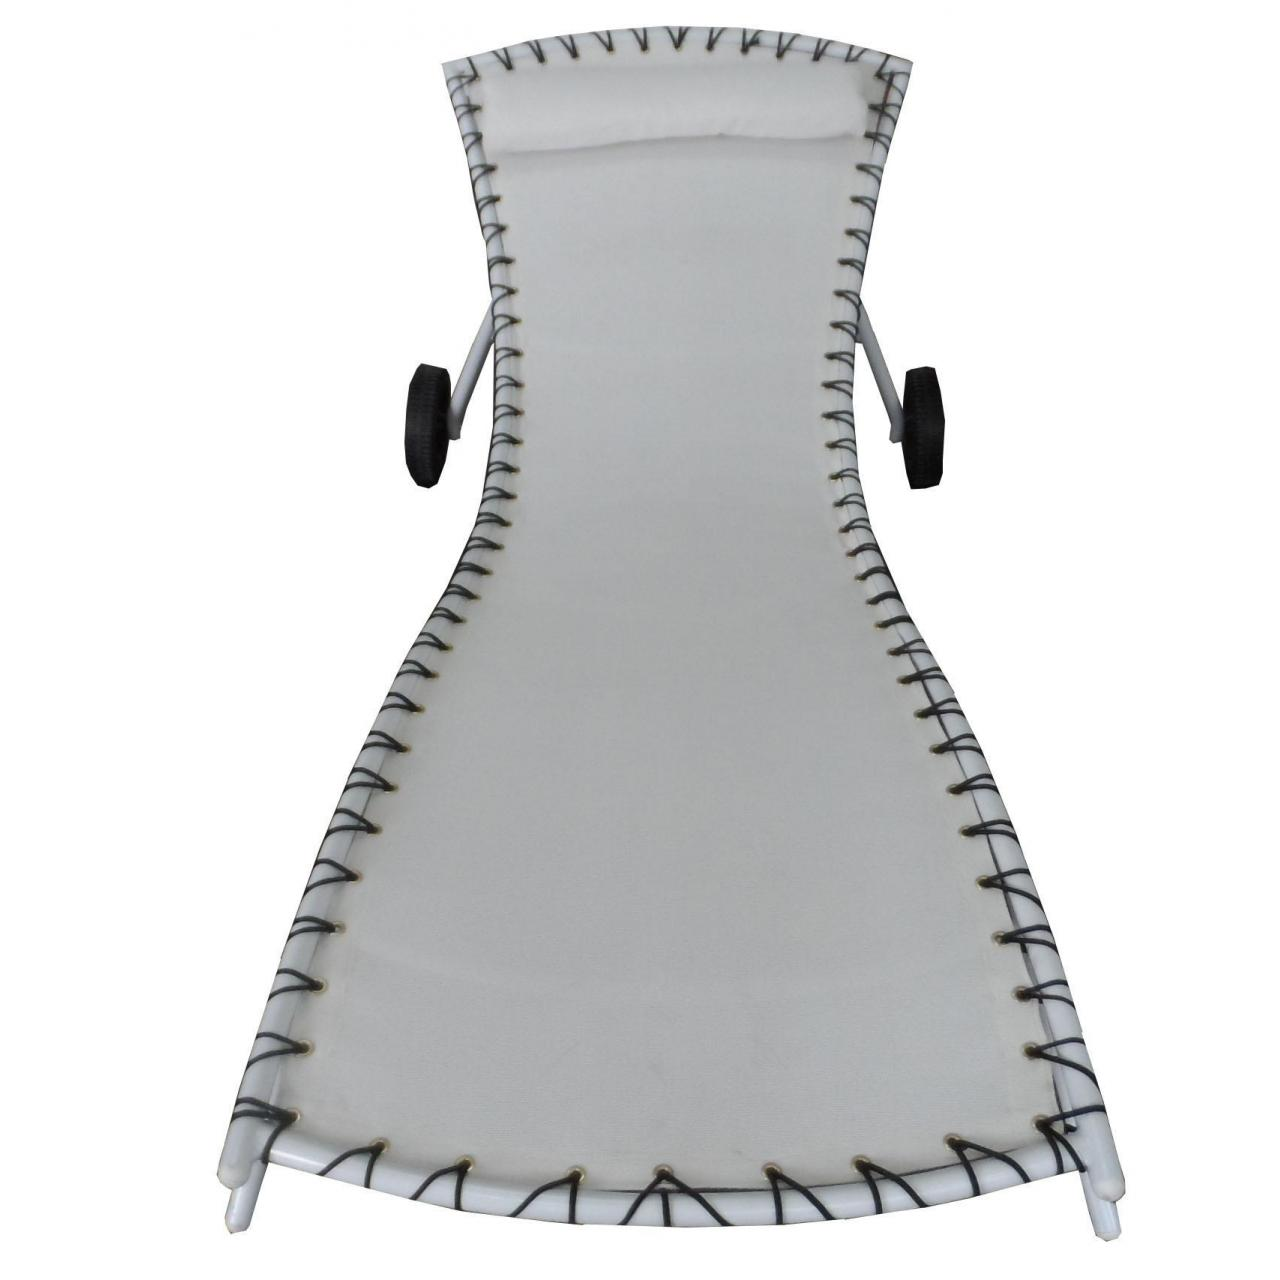 Sun loungers Aluminum KD sunlounger with wheels Manufactures